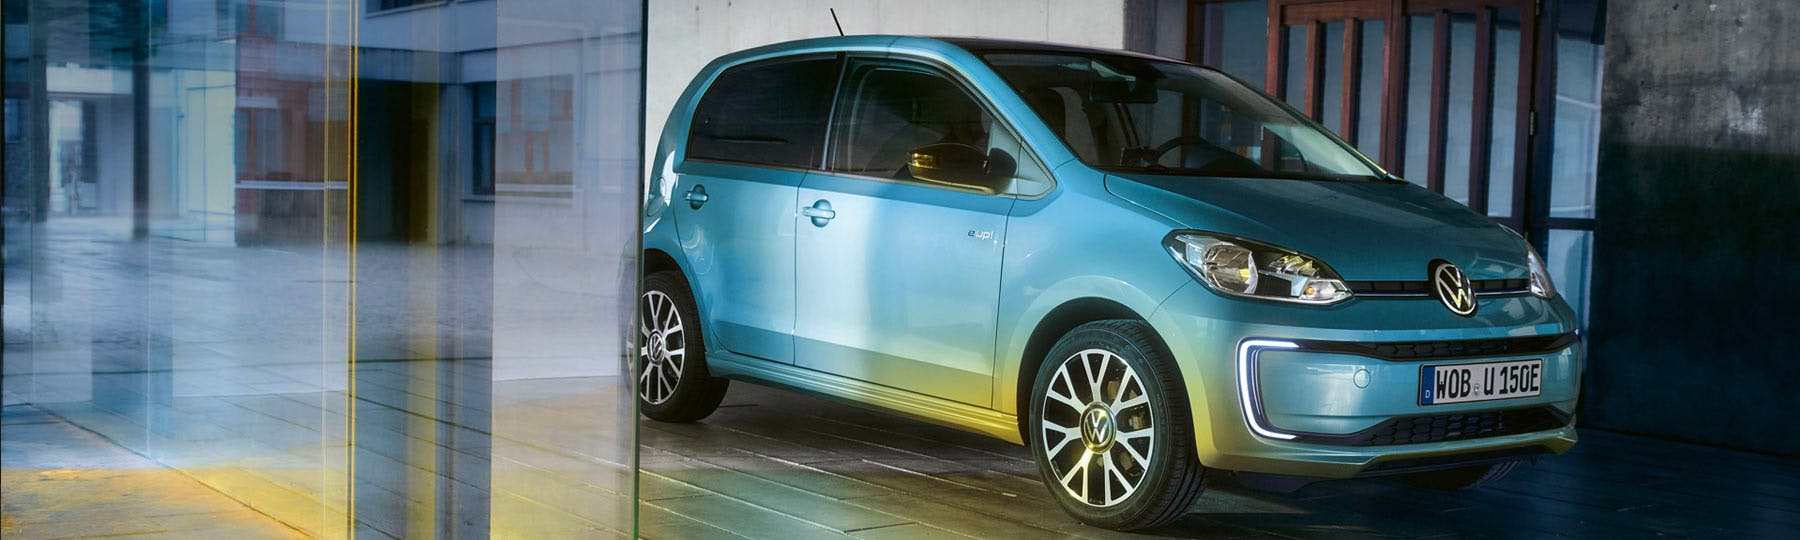 New Volkswagen e-up!